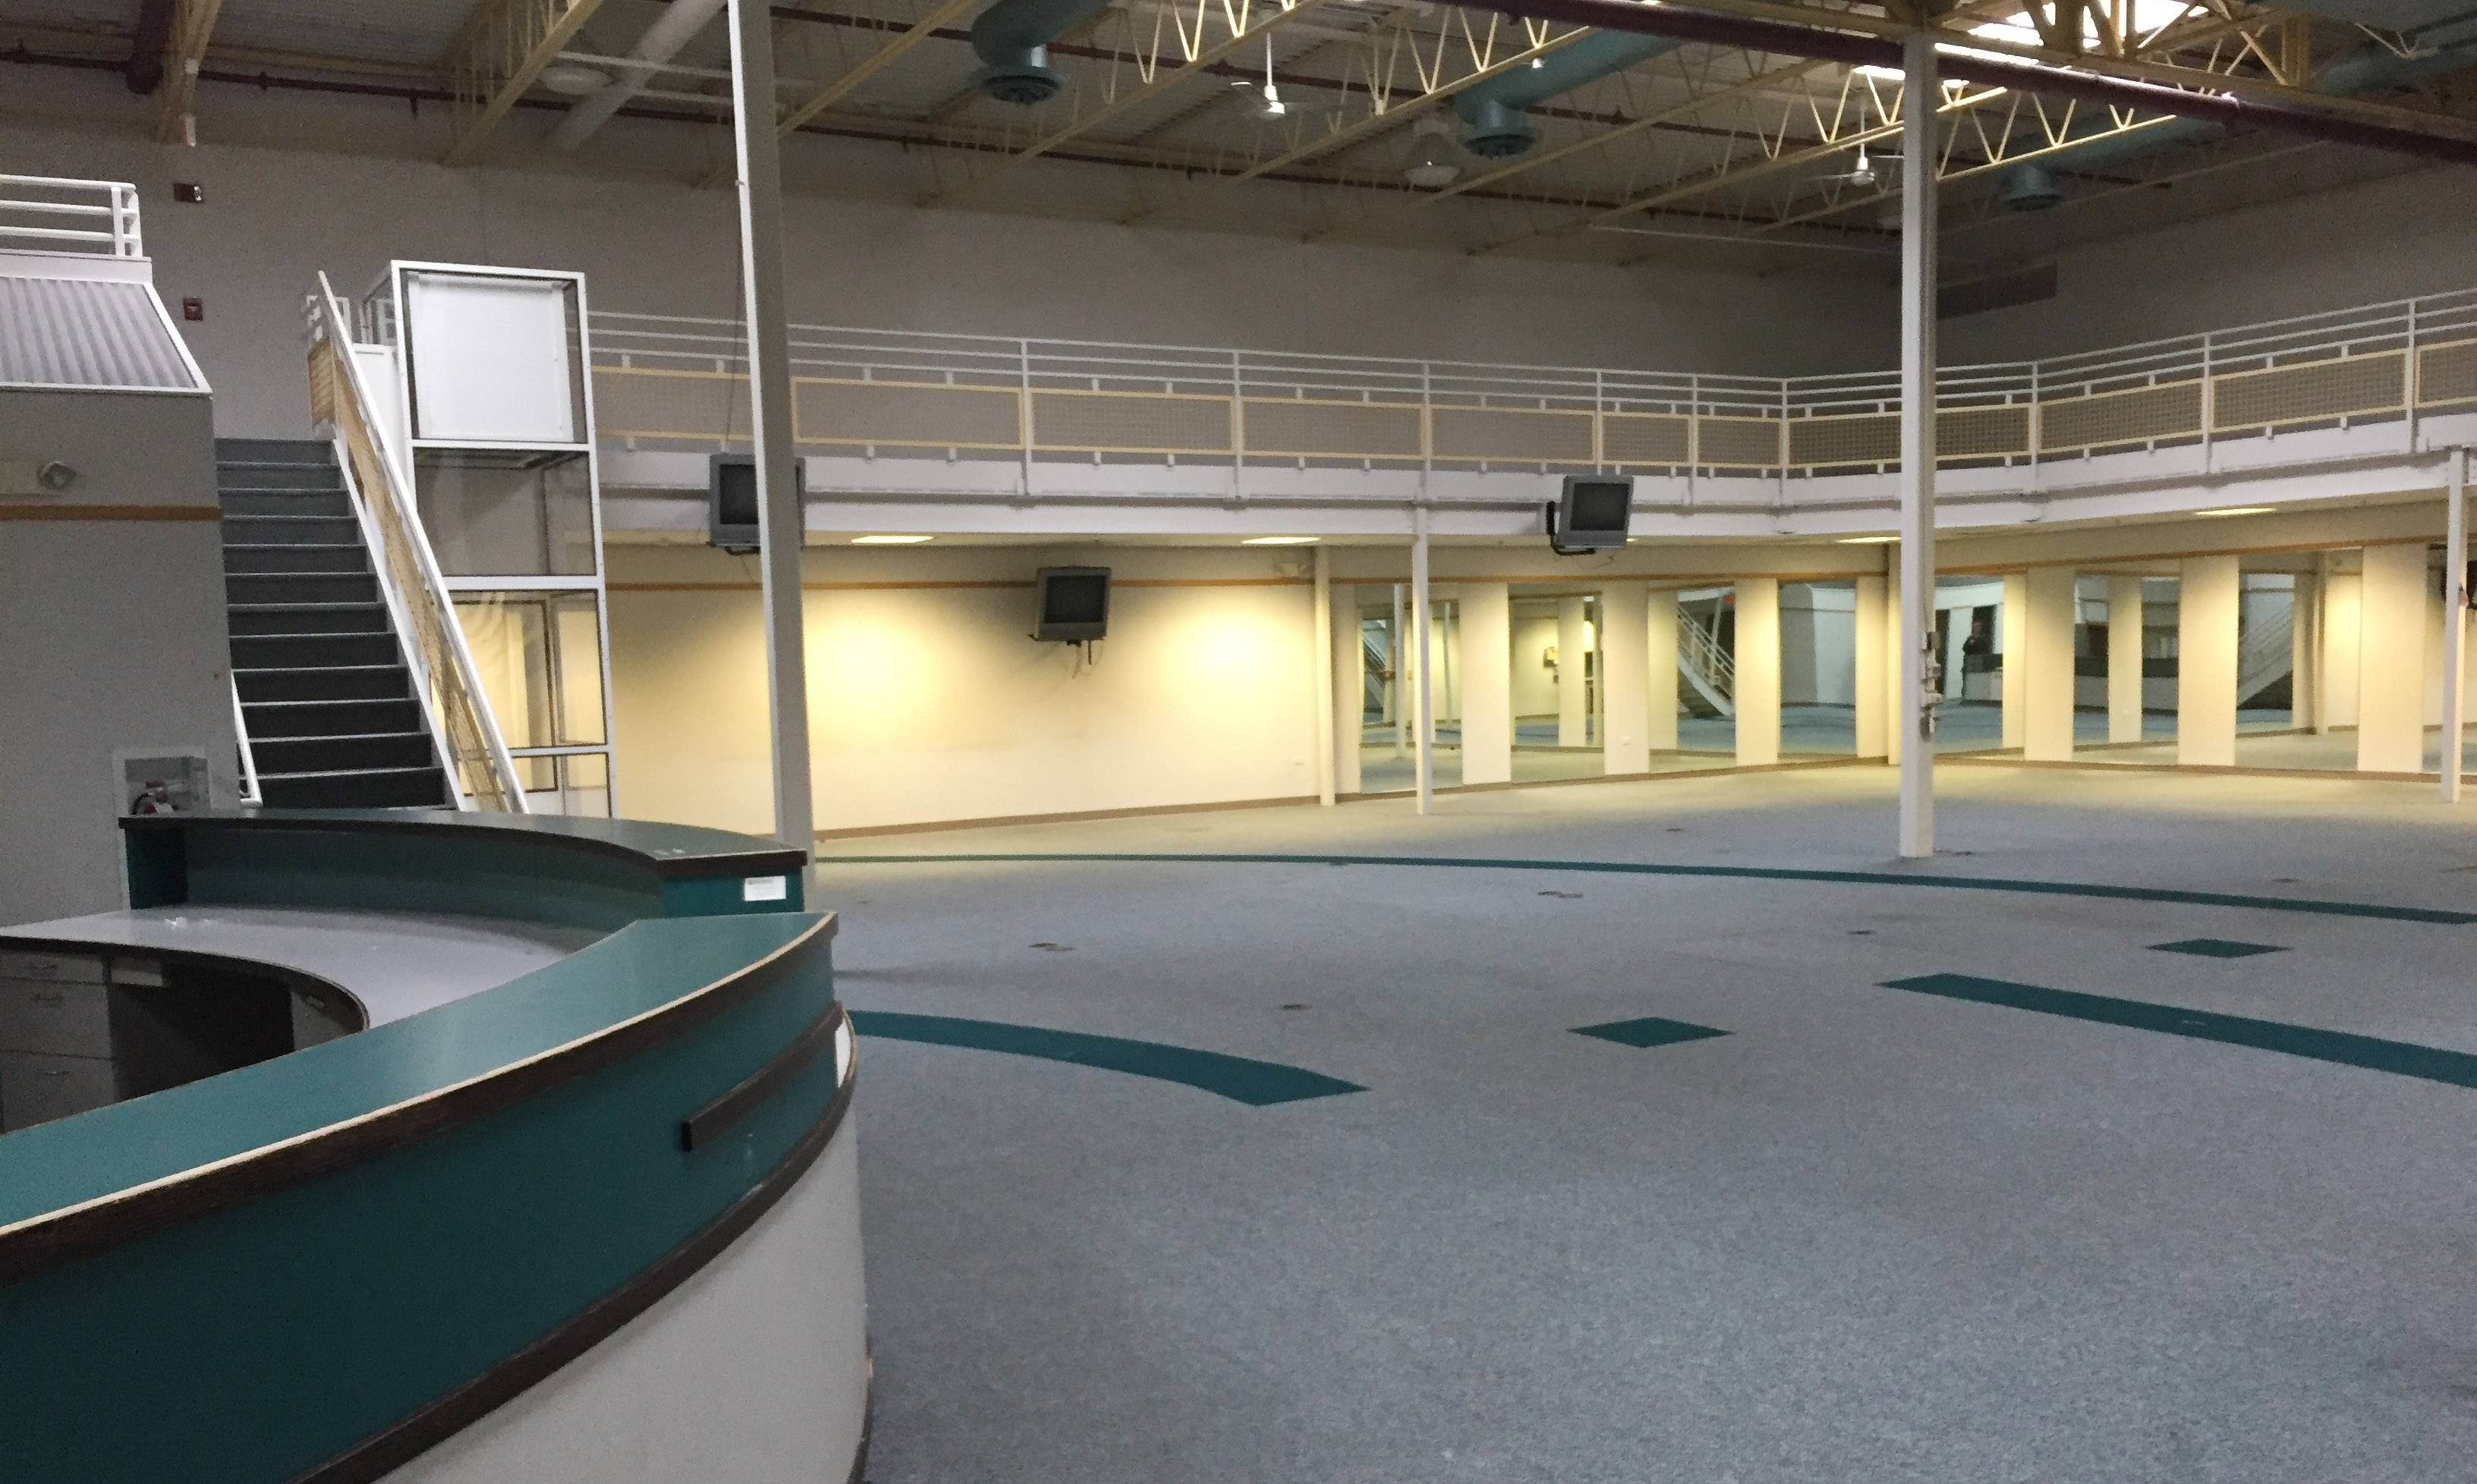 Plans fell through to open an indoor amusement center in the former Sherman Health Resource Center at 1019 E. Chicago St. in Elgin. Shown here is the former cardiac rehab area with an elevated running track inside the building.